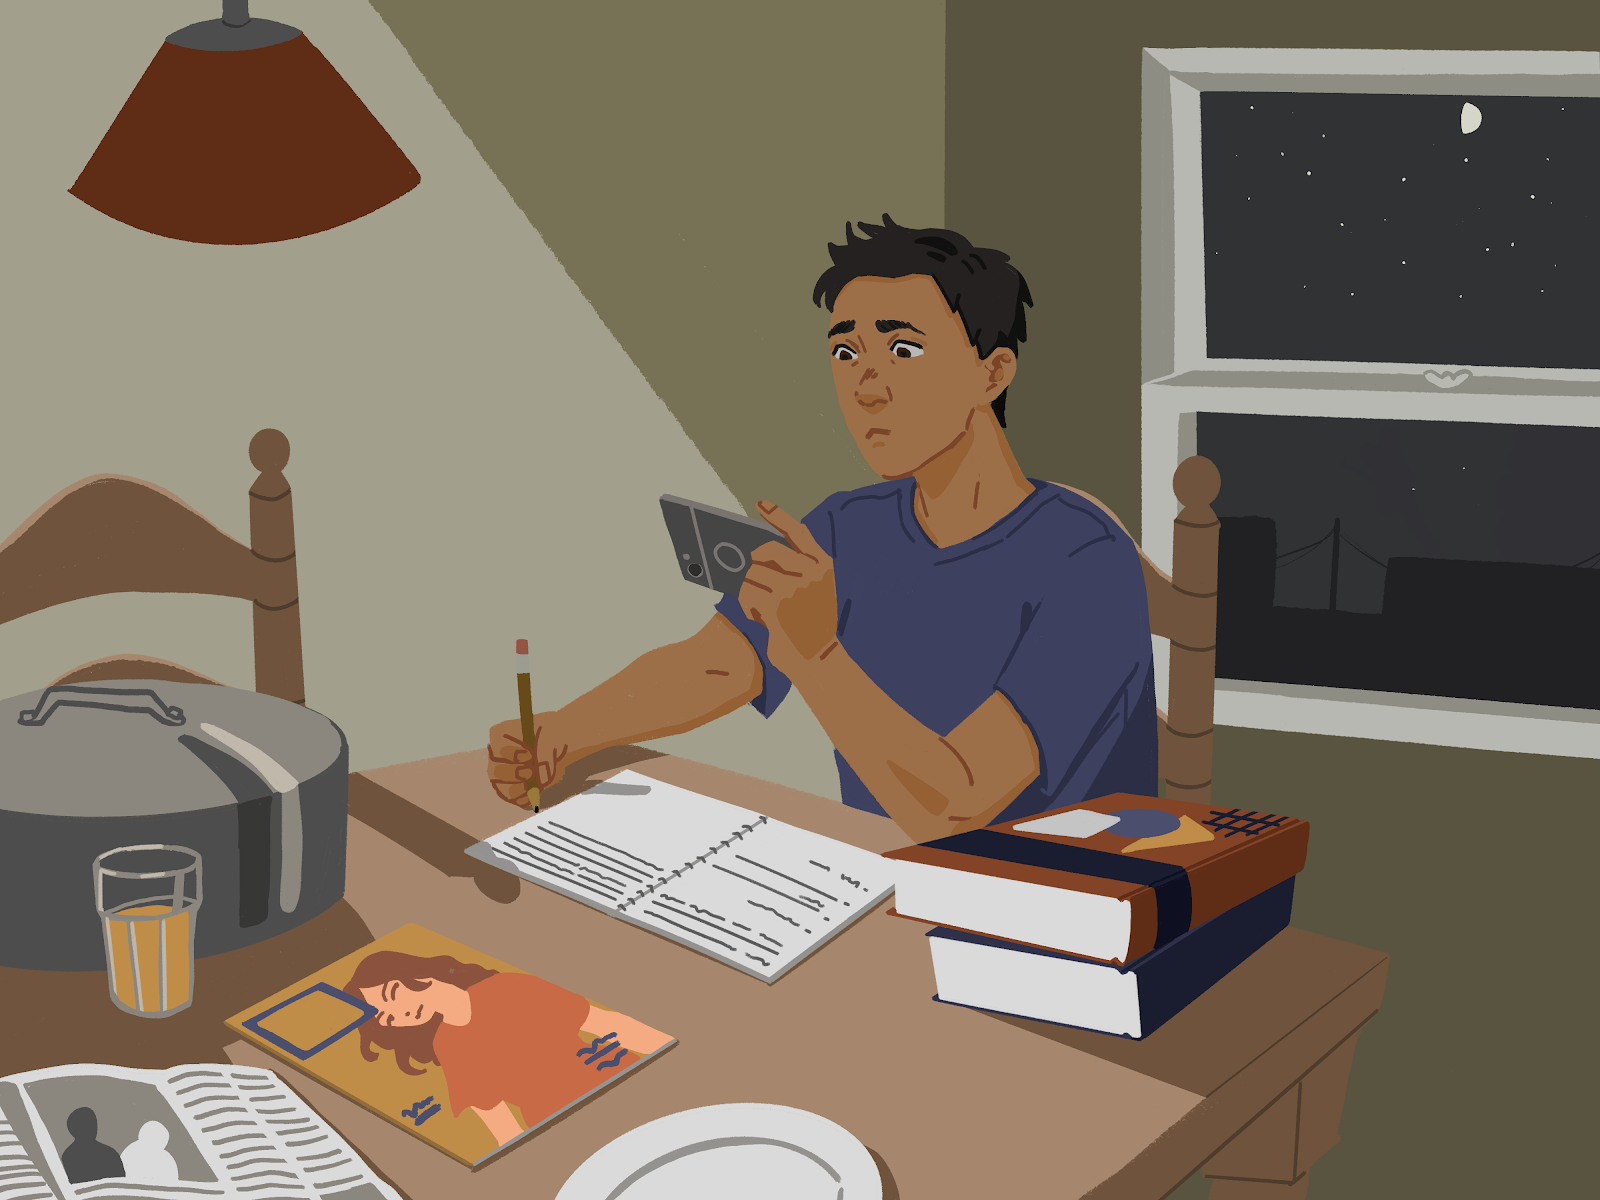 An illustration of a student looking at his phone while doing homework